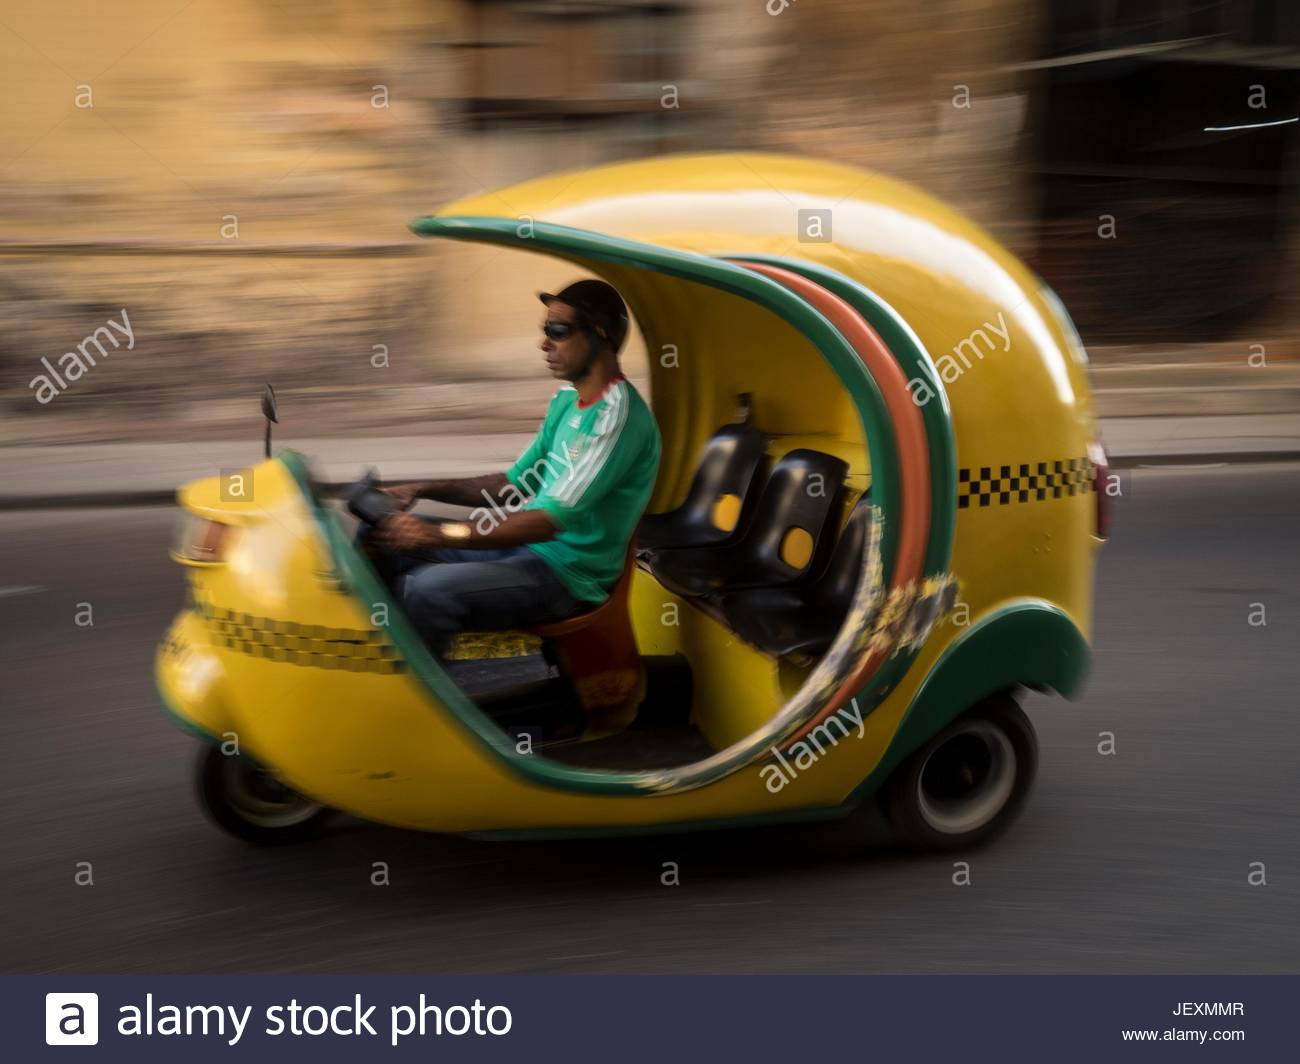 A cocotaxi or motorized rickshaw in the Calle Colon in La Habana Vieja. - Stock Image